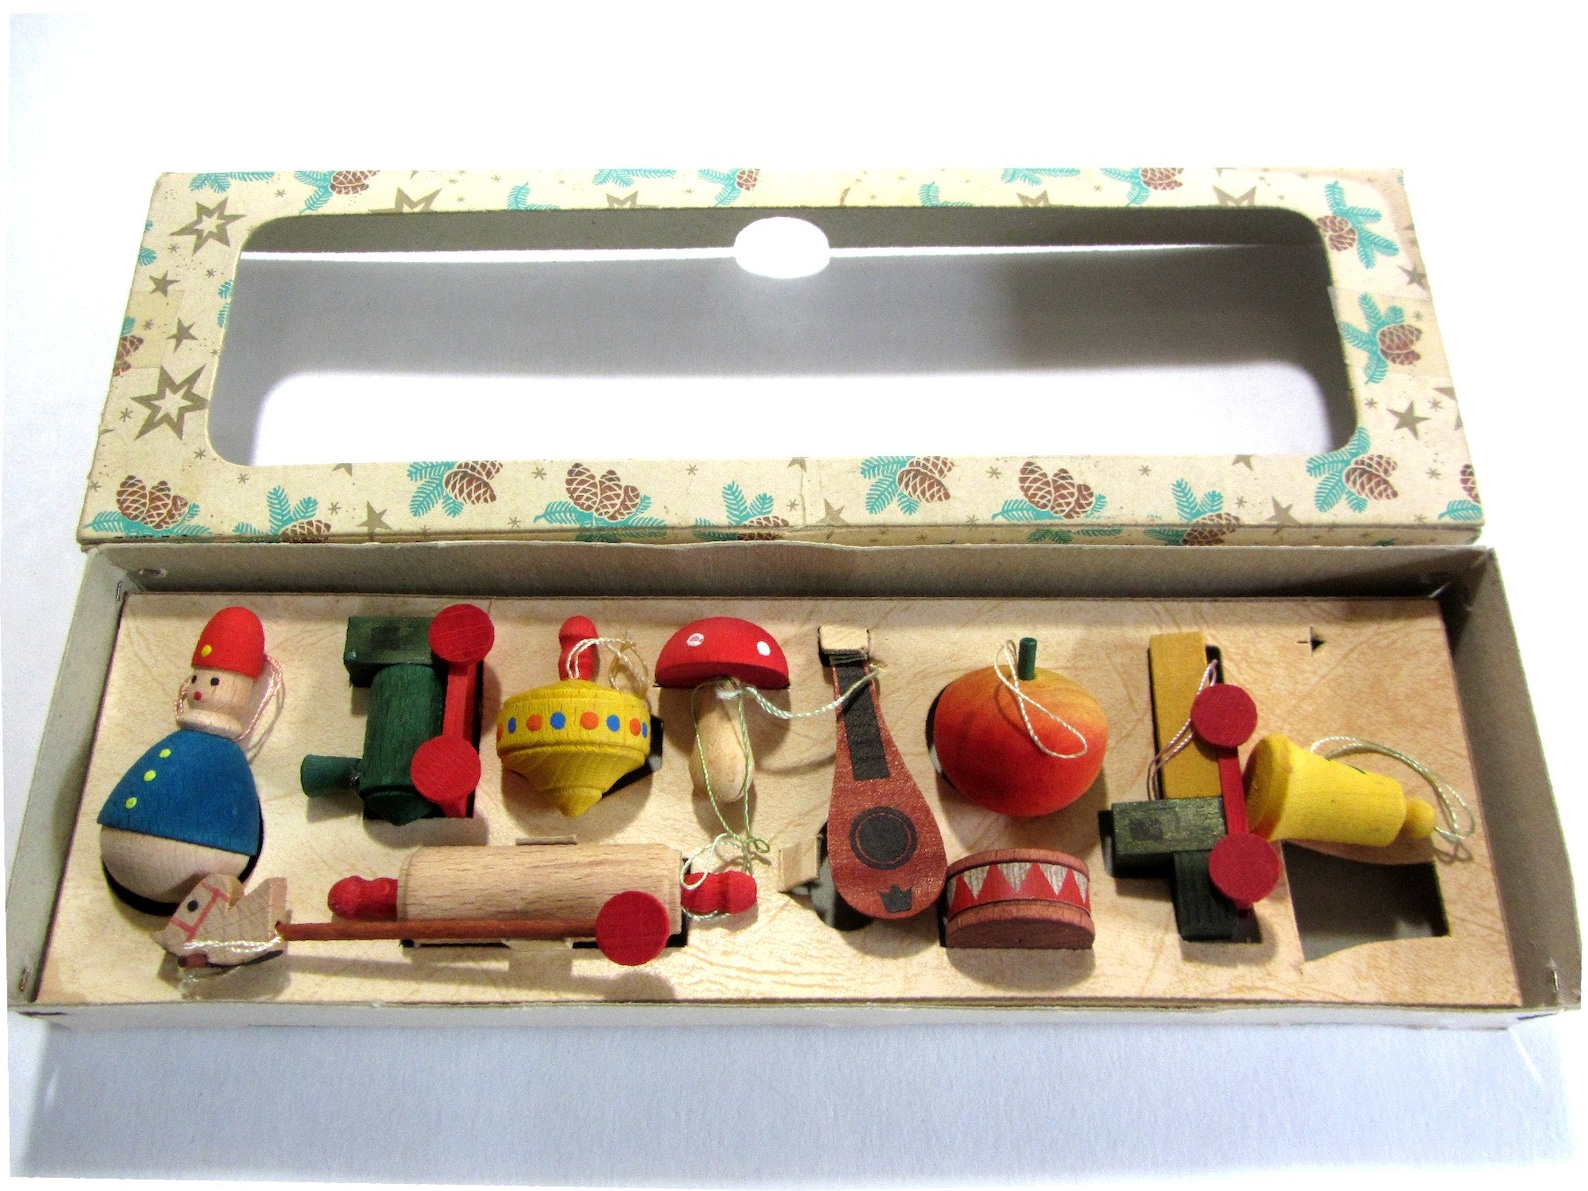 Vintage Erzgebirge Ornaments Christmas Tree Wooden Handcrafted Mini Toys Germany Original Box